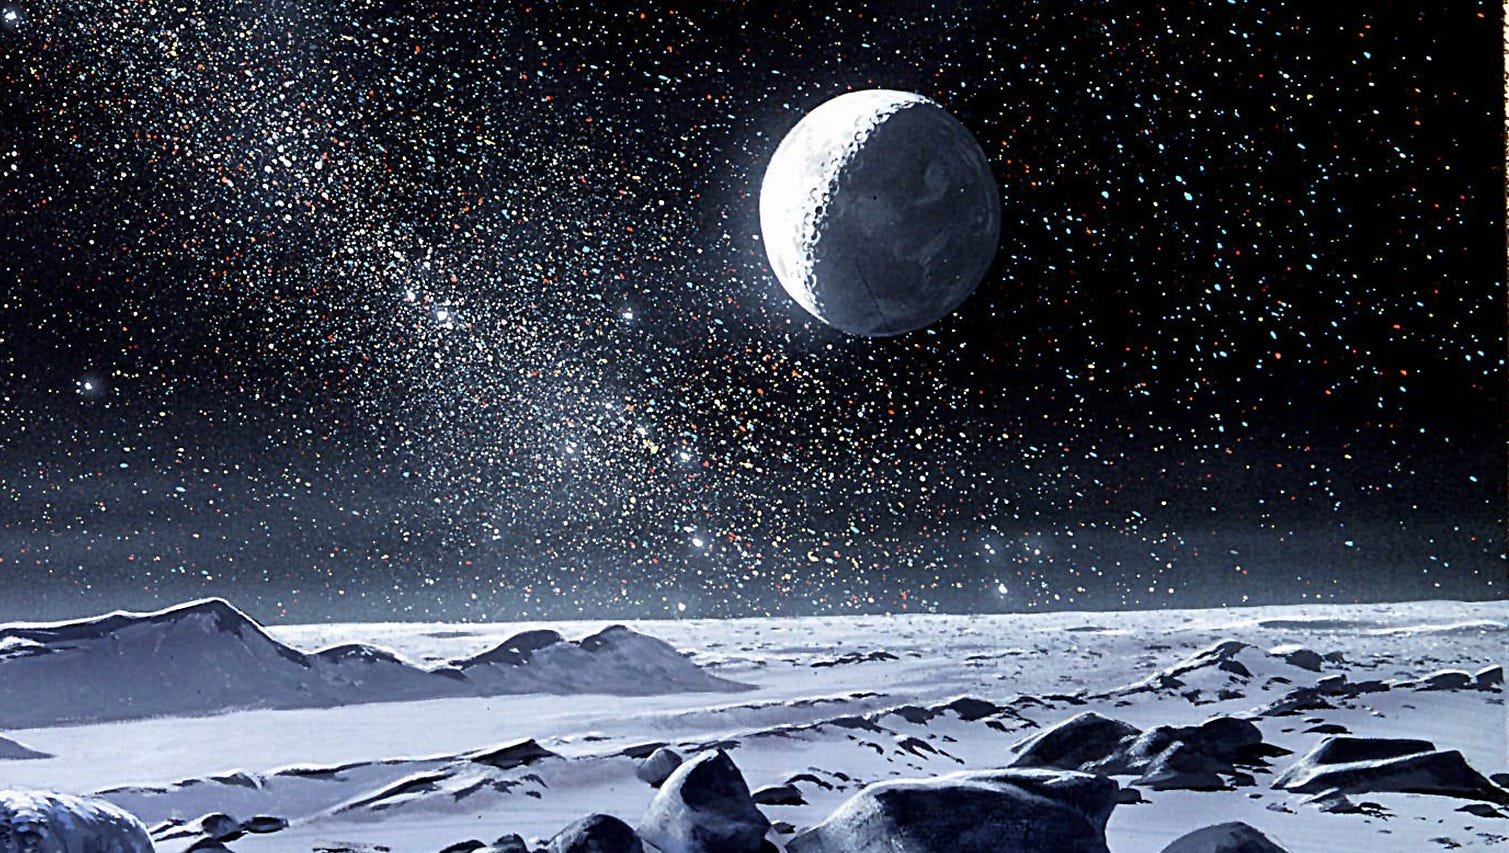 Pluto's atmosphere is starting to disappear!